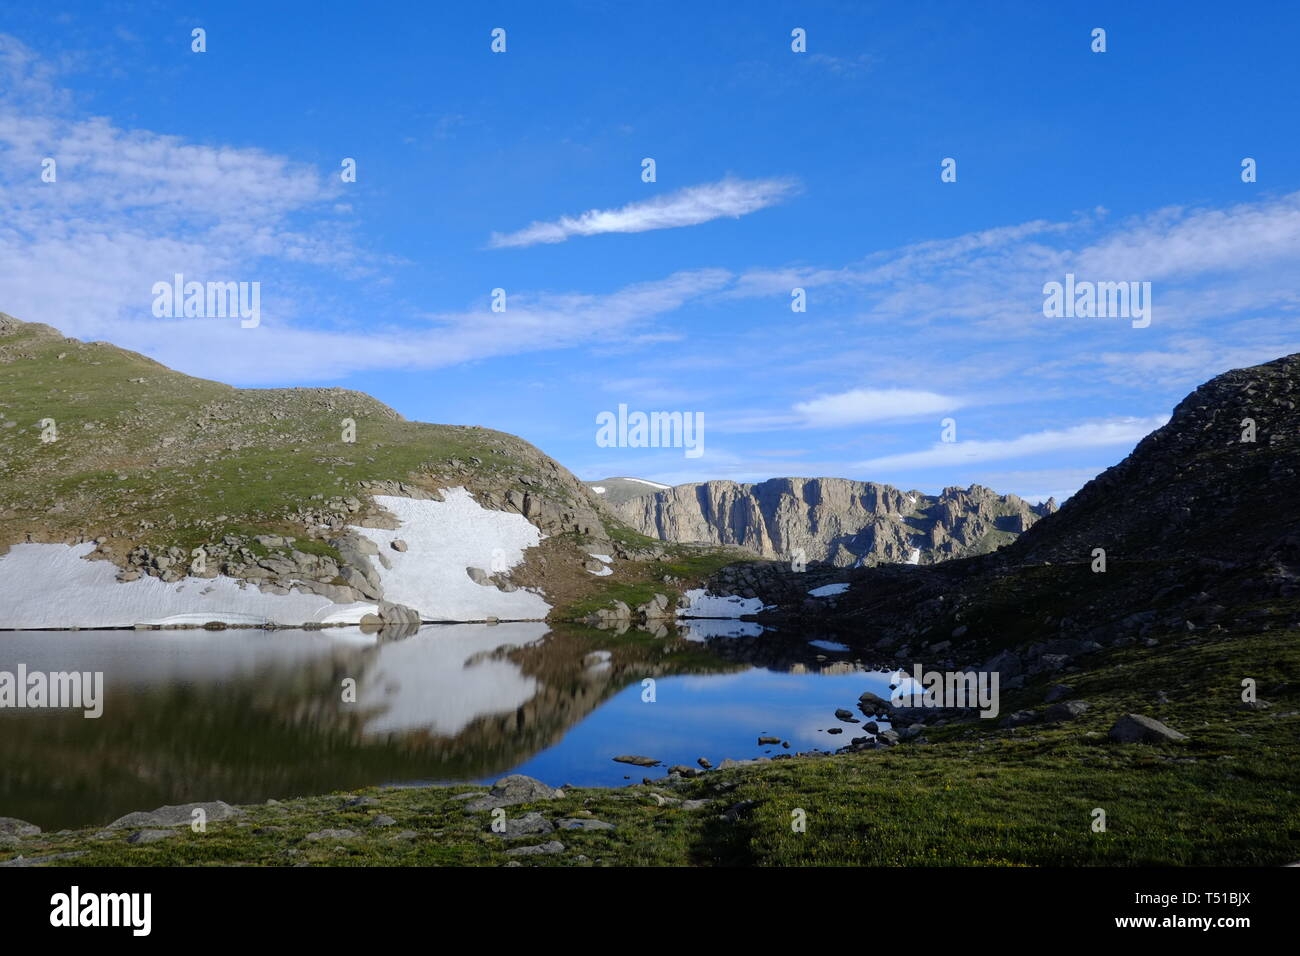 Summit Lake at Mount Evans, a 14,000 foot mountain located in the Arapaho National Forest of Colorado, USA. - Stock Image